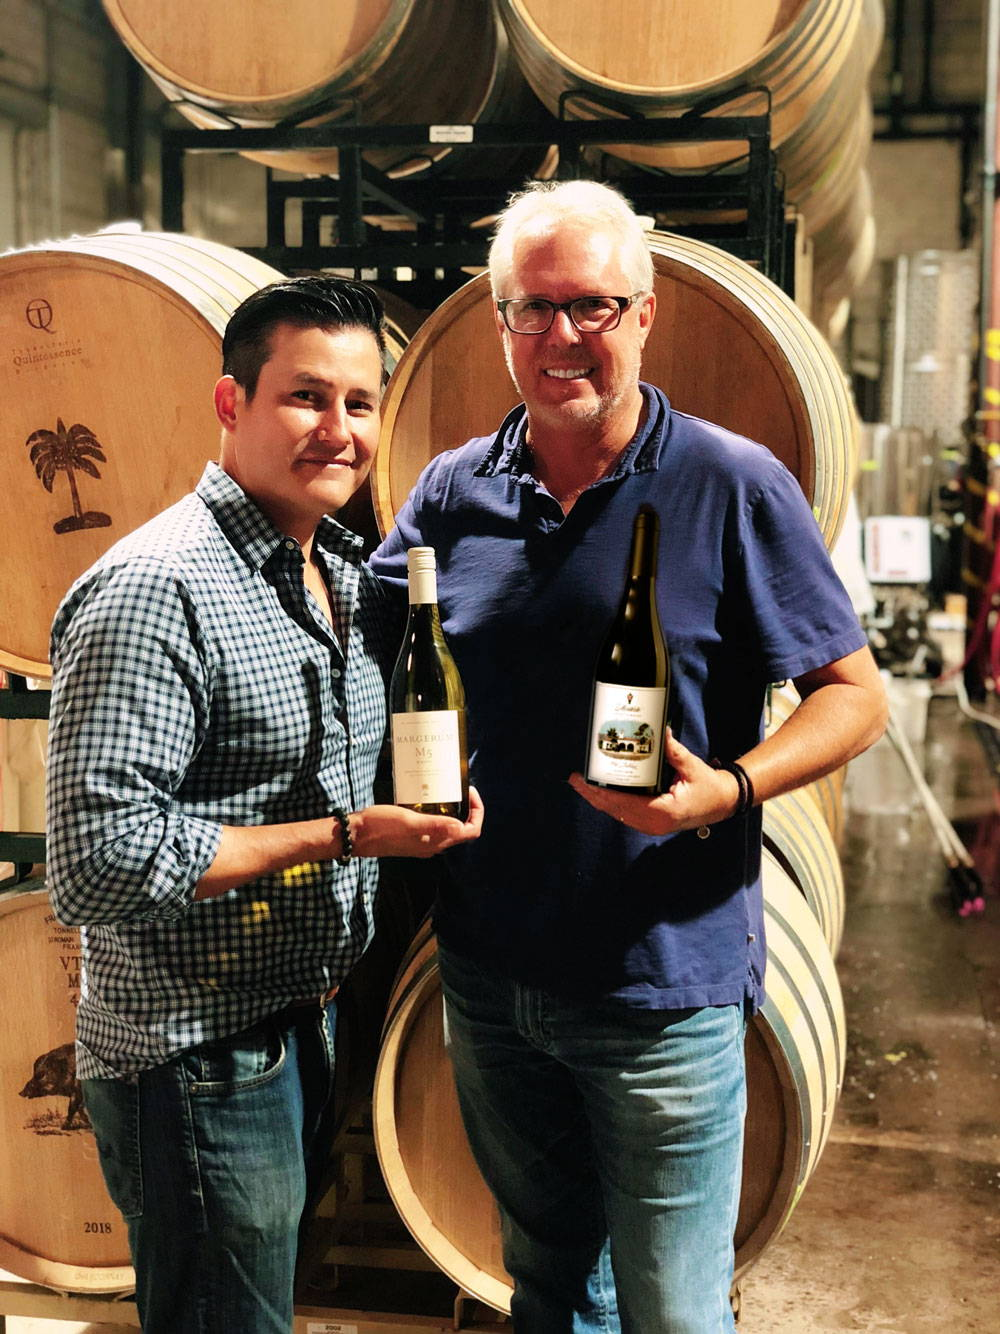 Patrick Braid and Doug Margerum for Montecito Wine Company